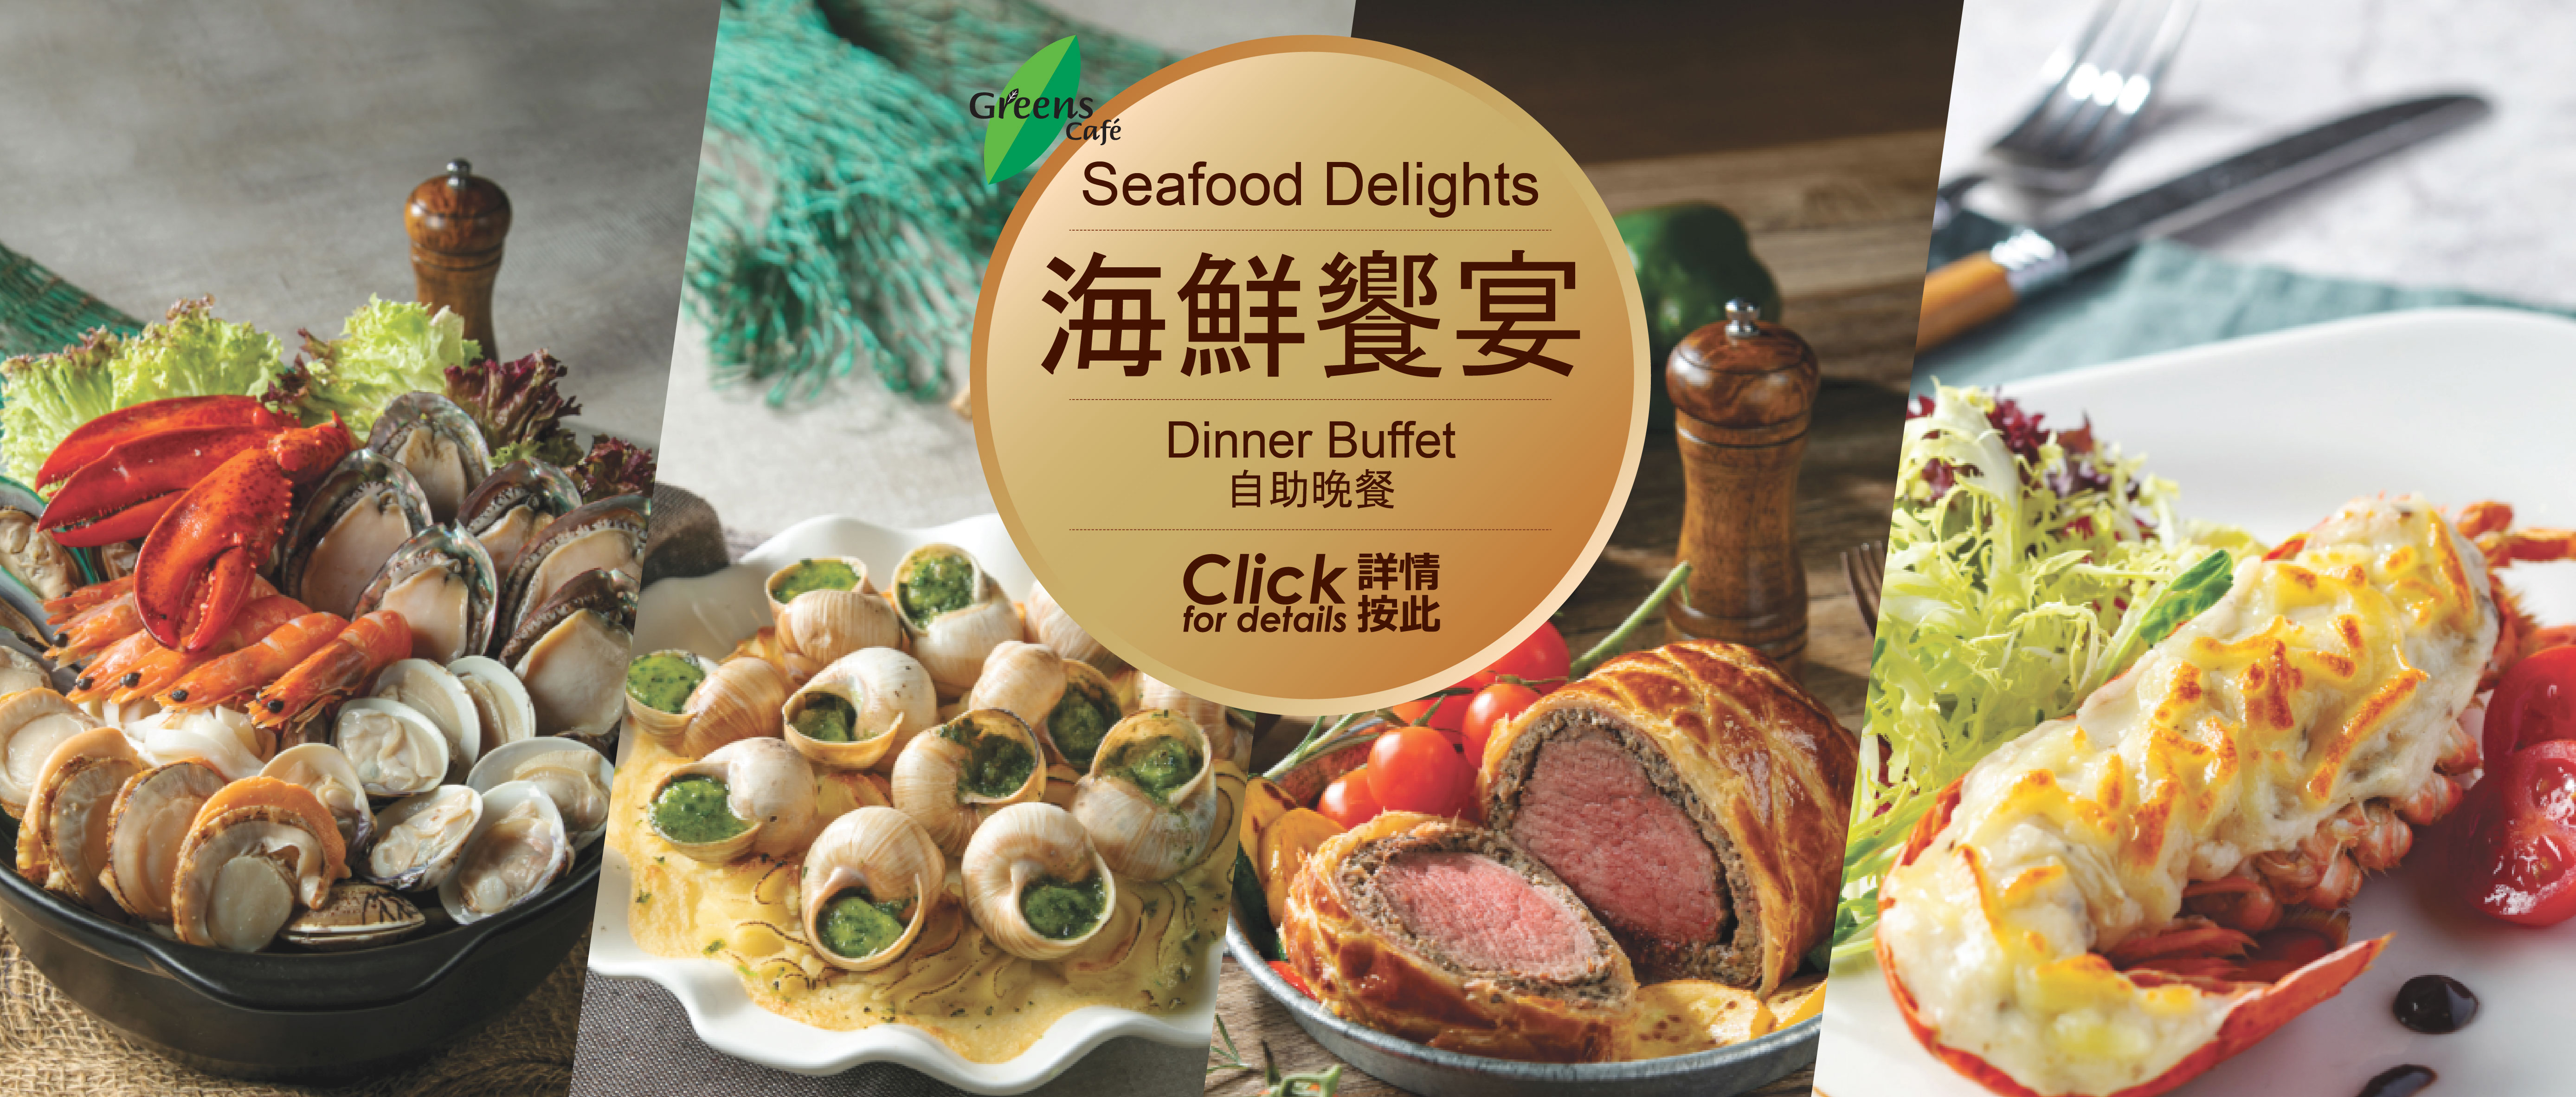 Seafood Delights Dinner Buffet